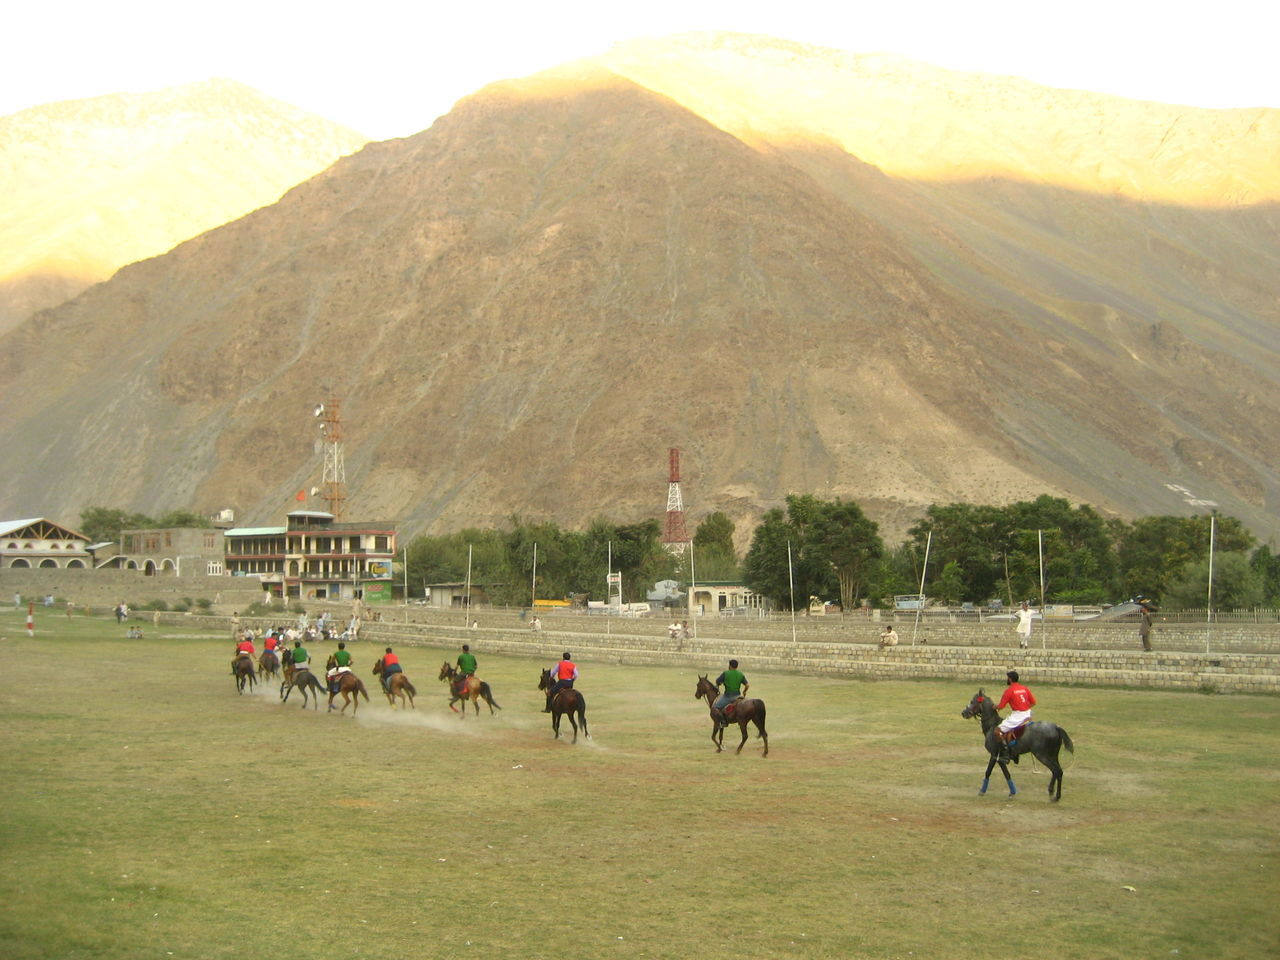 horse, mountain, domestic animals, horseback riding, mammal, competition, sport, horse racing, real people, field, men, jockey, riding, mountain range, competitive sport, landscape, day, nature, large group of people, outdoors, sports race, sports track, grass, adult, people